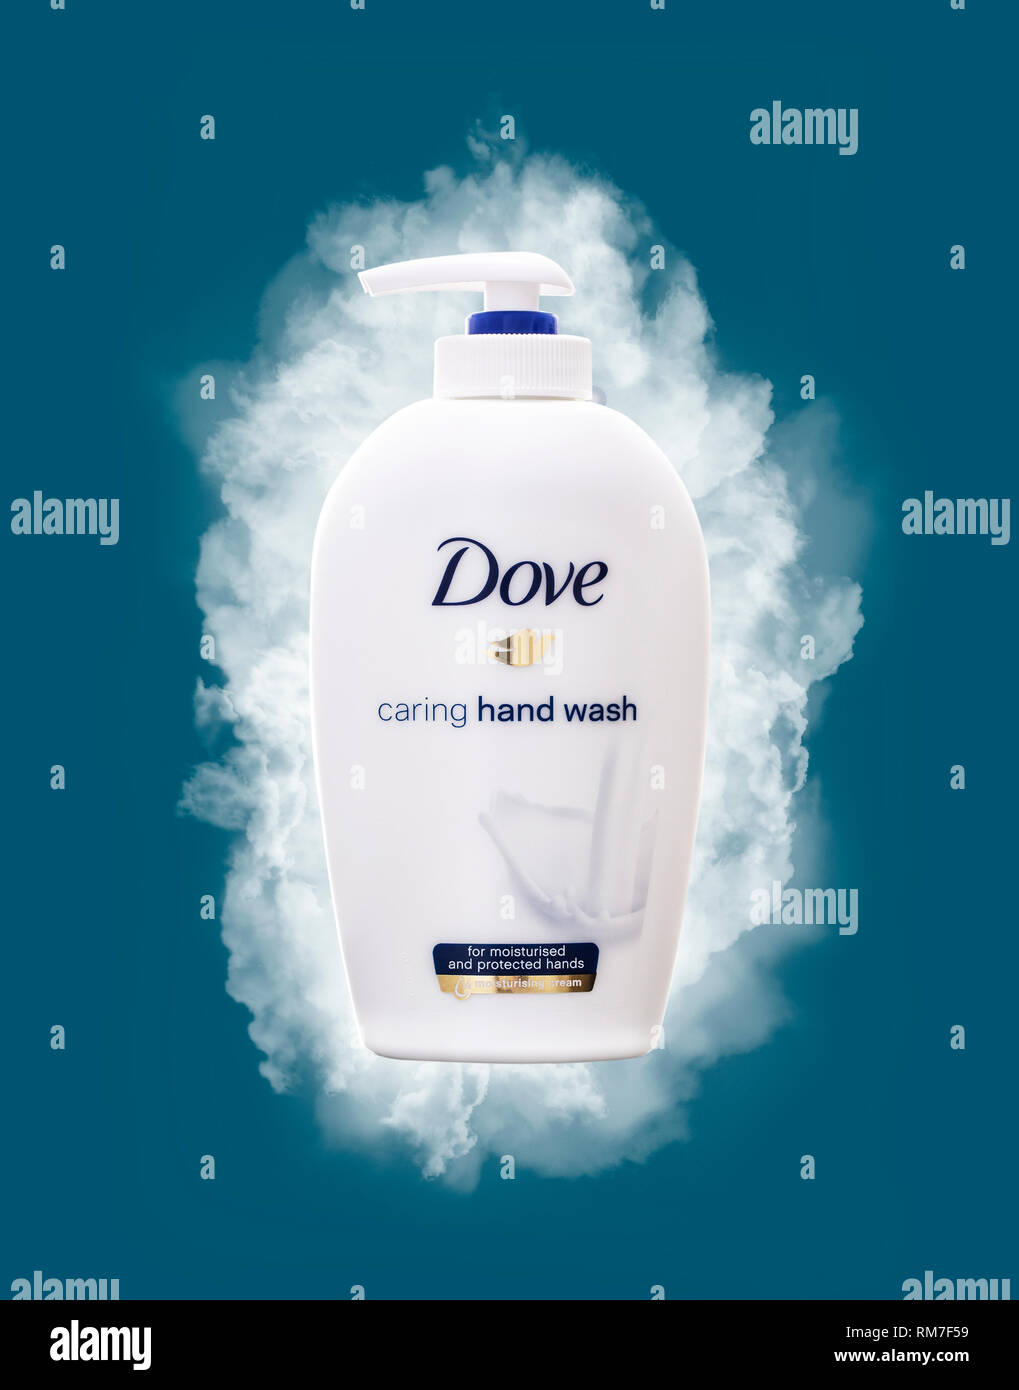 SWINDON, UK - FEBUARY 12, 2019: Dove caring hand wash for moisturised and protected hands - Stock Image